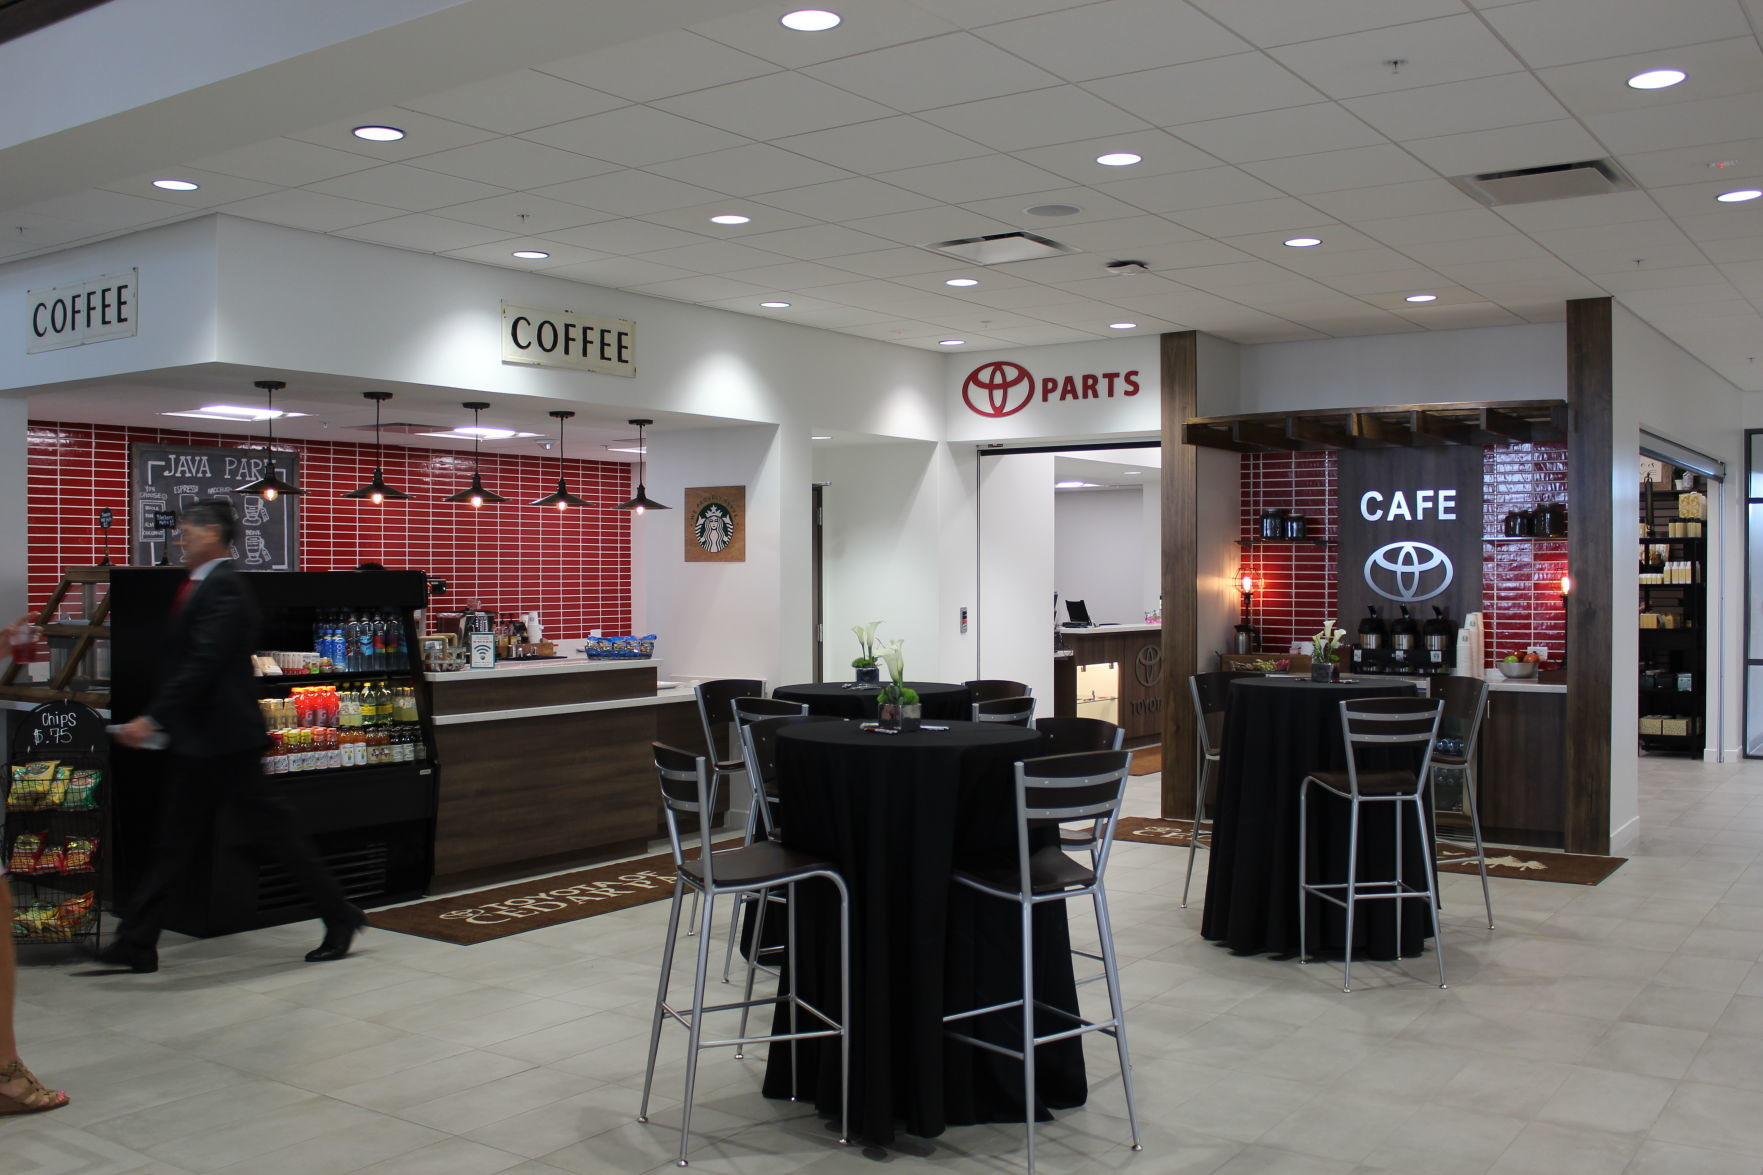 The 80,000 square-foot Toyota facility features a Starbucks cafe for customers waiting on service as well as a home decor boutique.